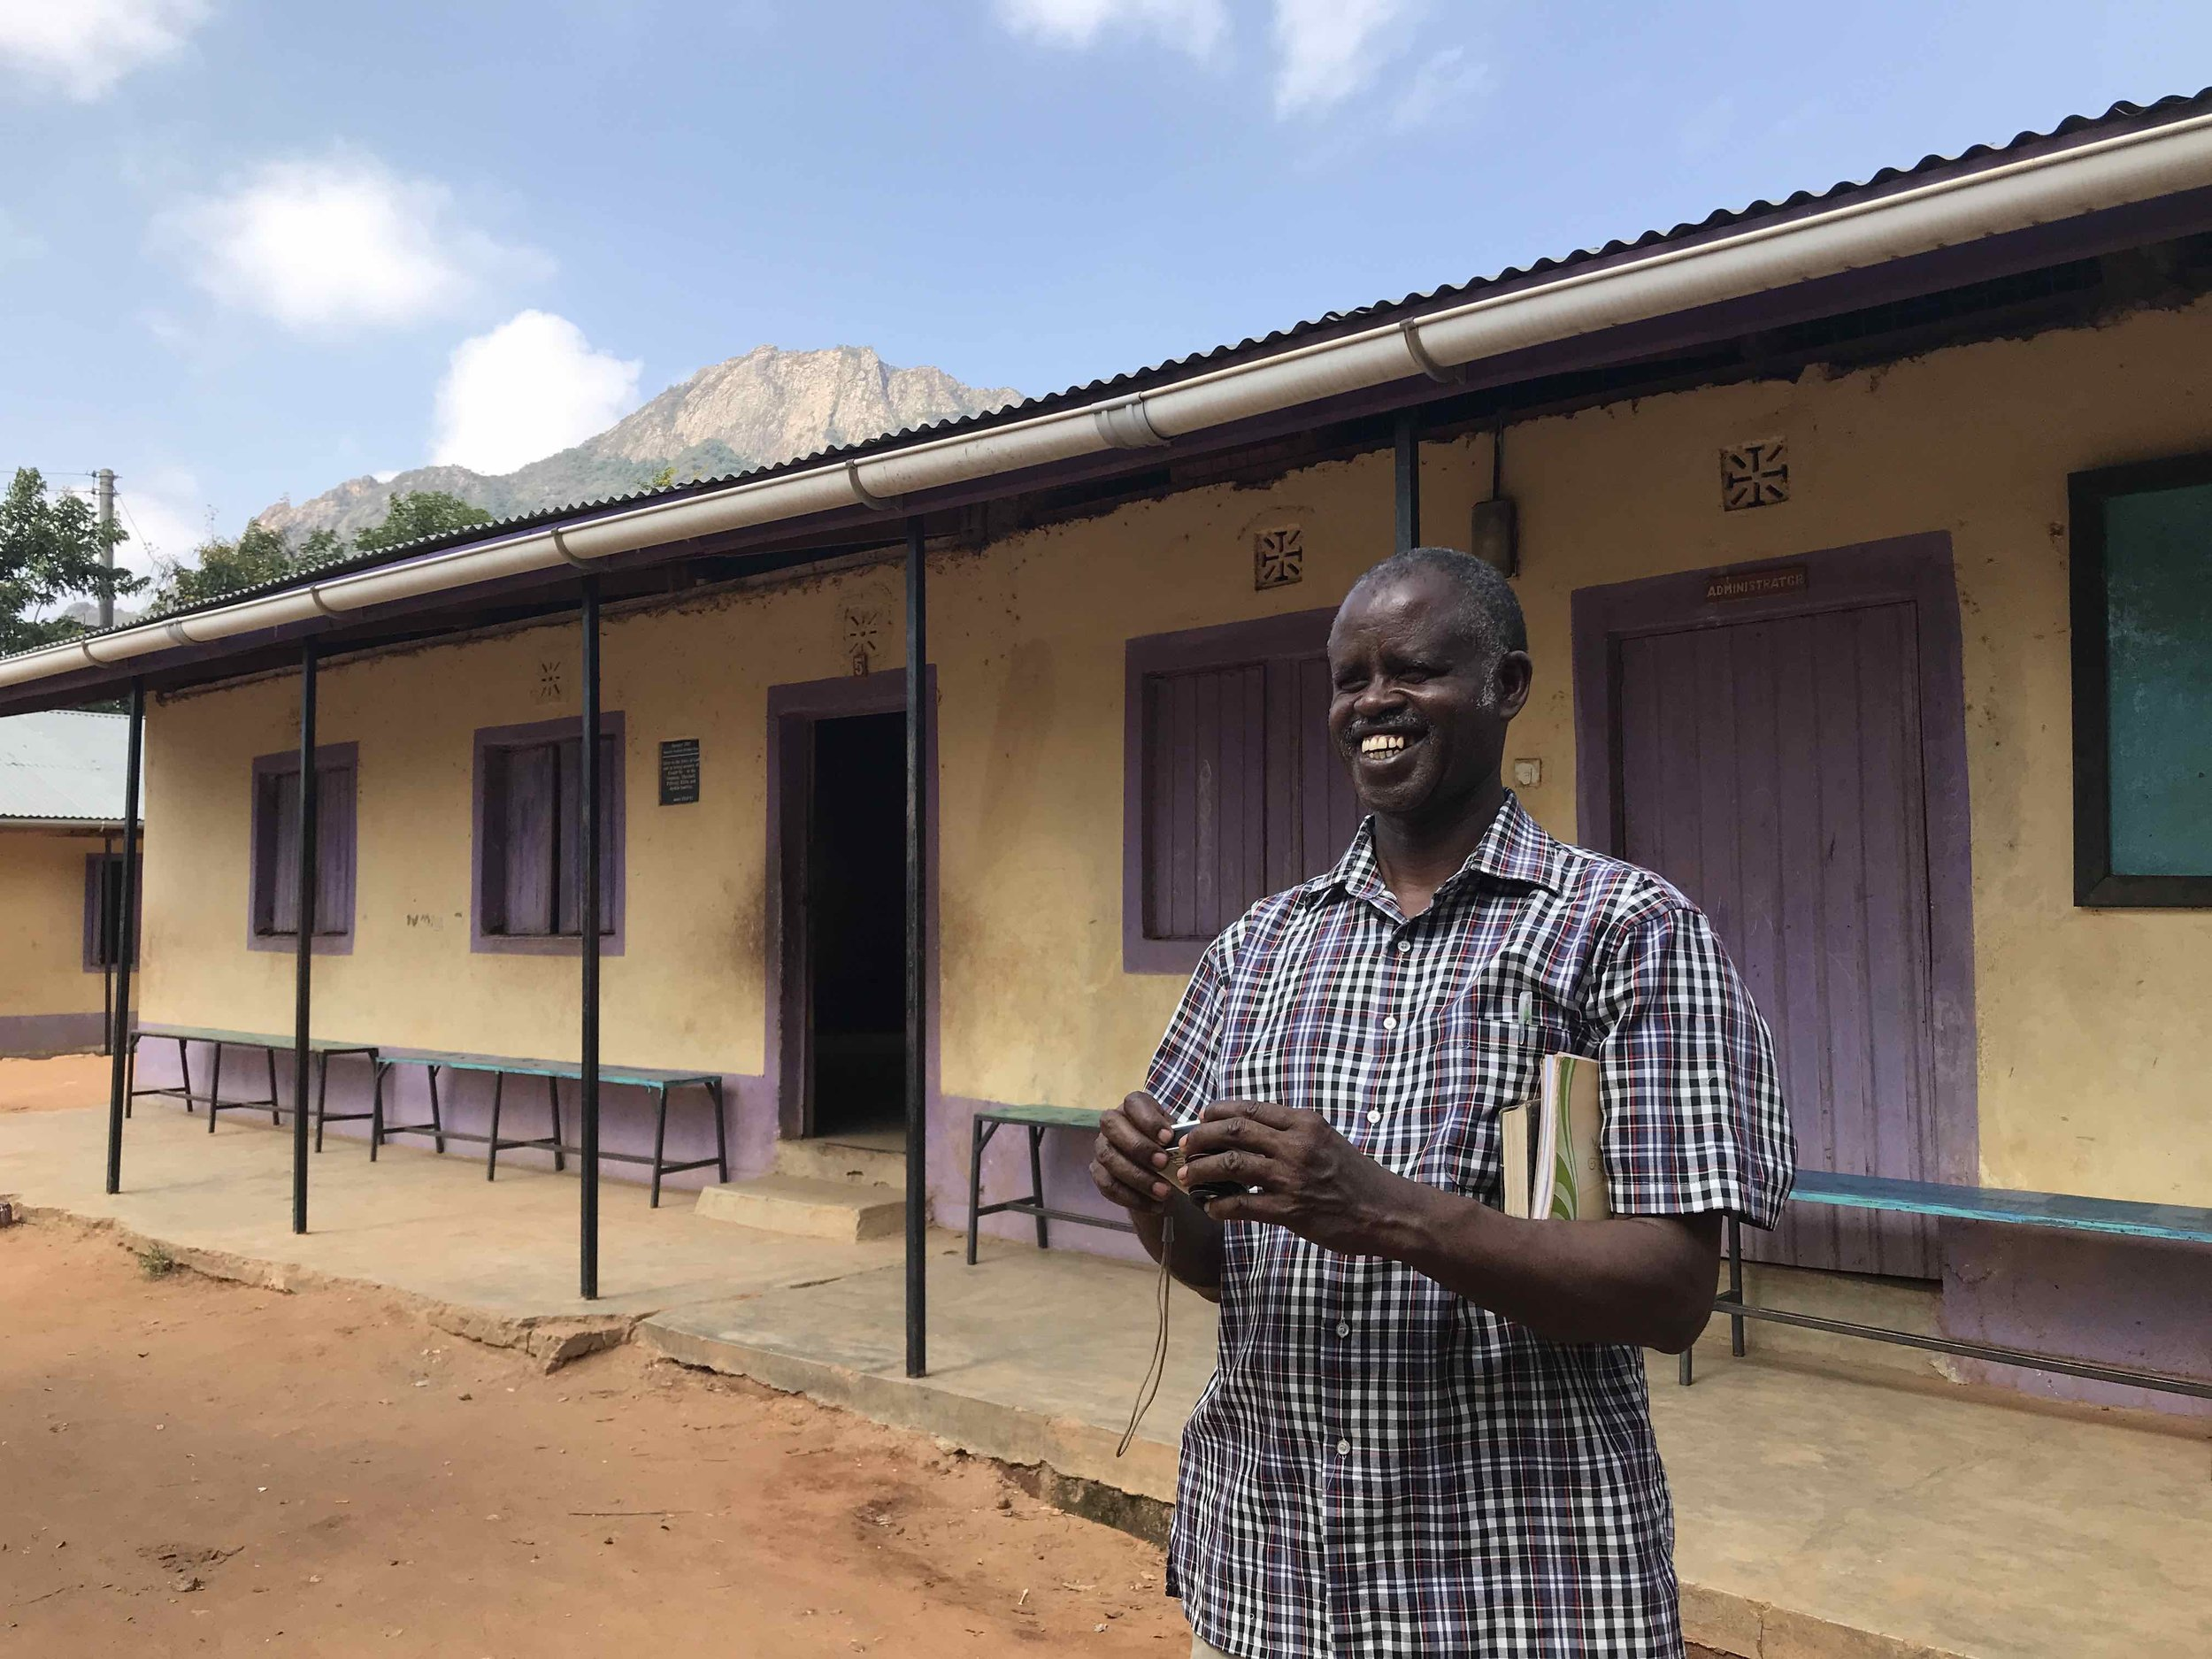 The Rev. Joseph Kesho is the Secretary of Education for the Diocese of Marsabit.